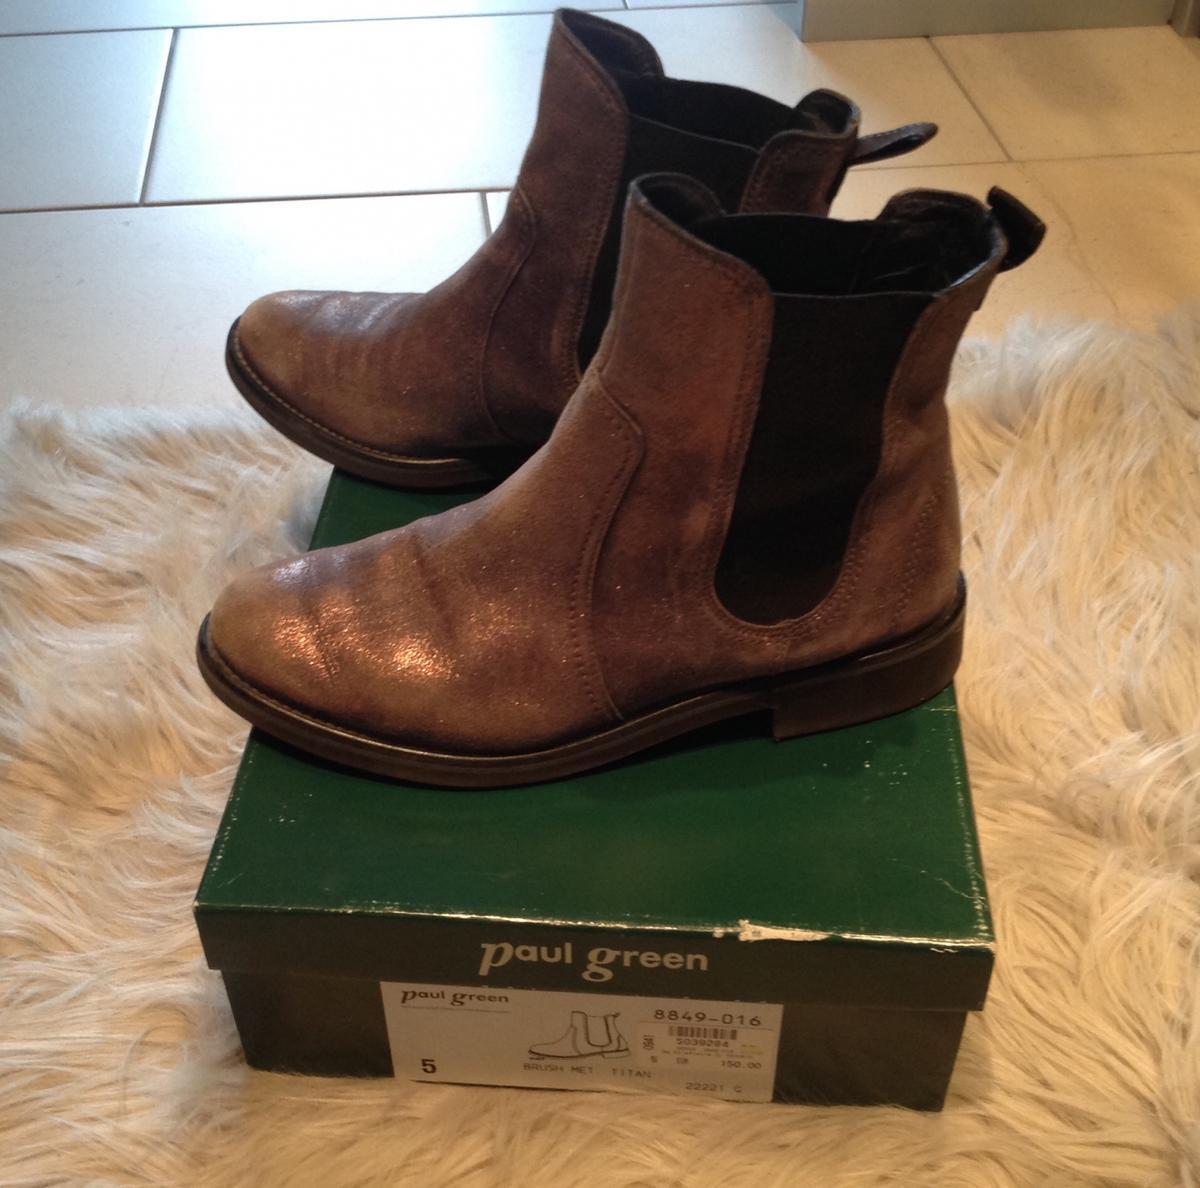 150 Stiefelette Np Paul Paul Green Green gf76by